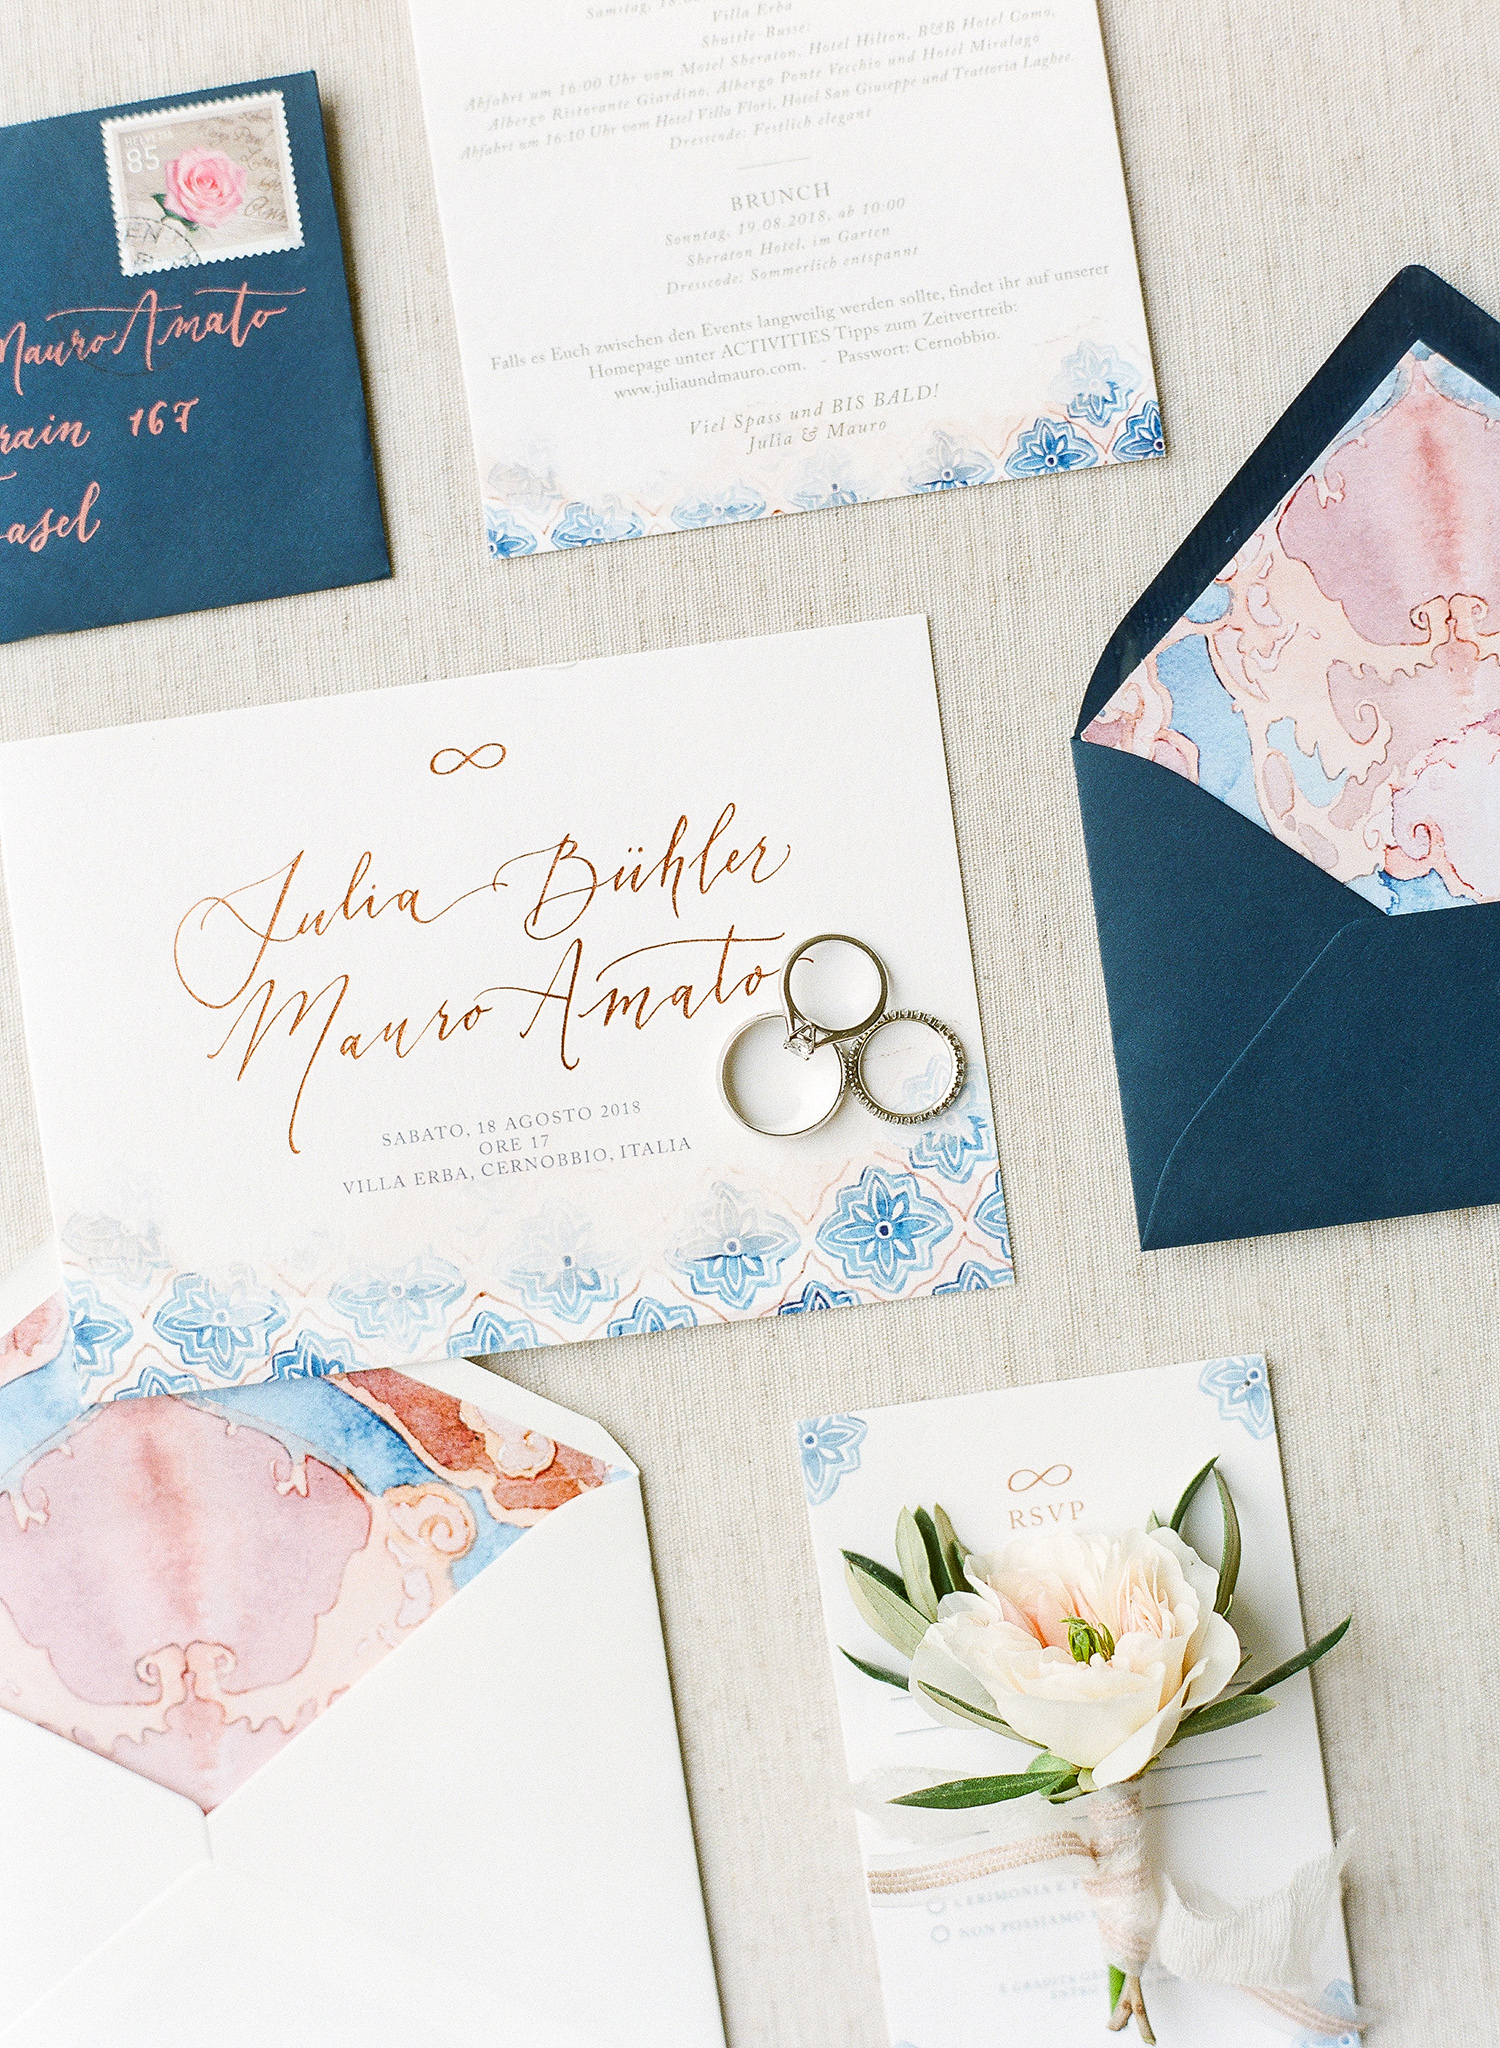 julia mauro wedding blue and pink invitations